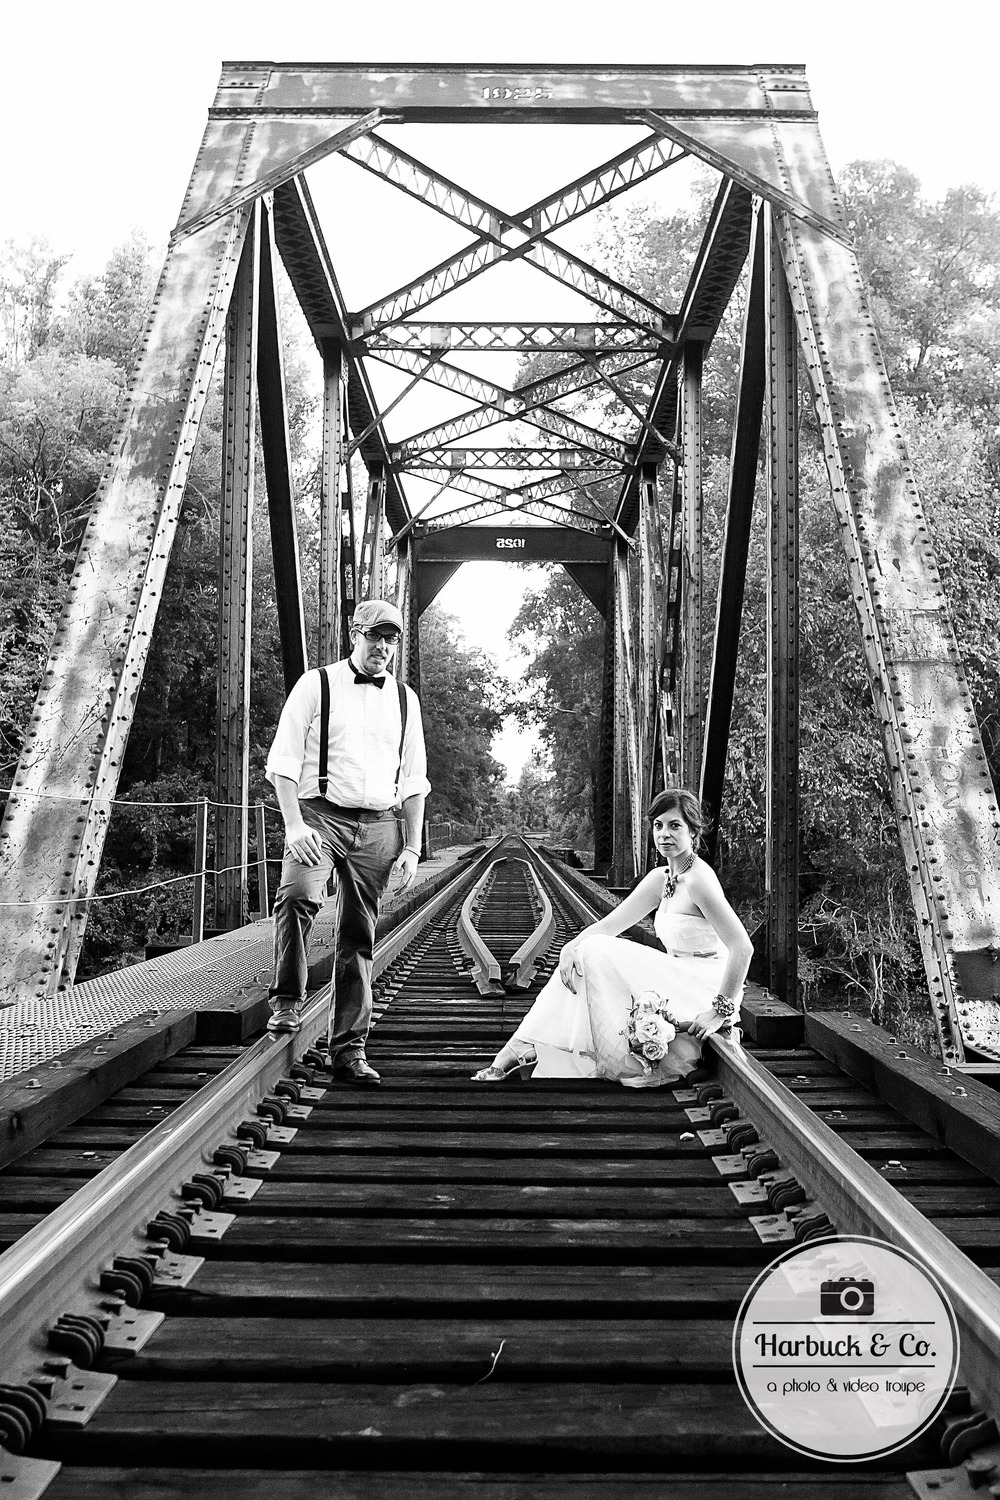 Such an epic photo on an old RR bridge. Gotta love the black & white for this one!